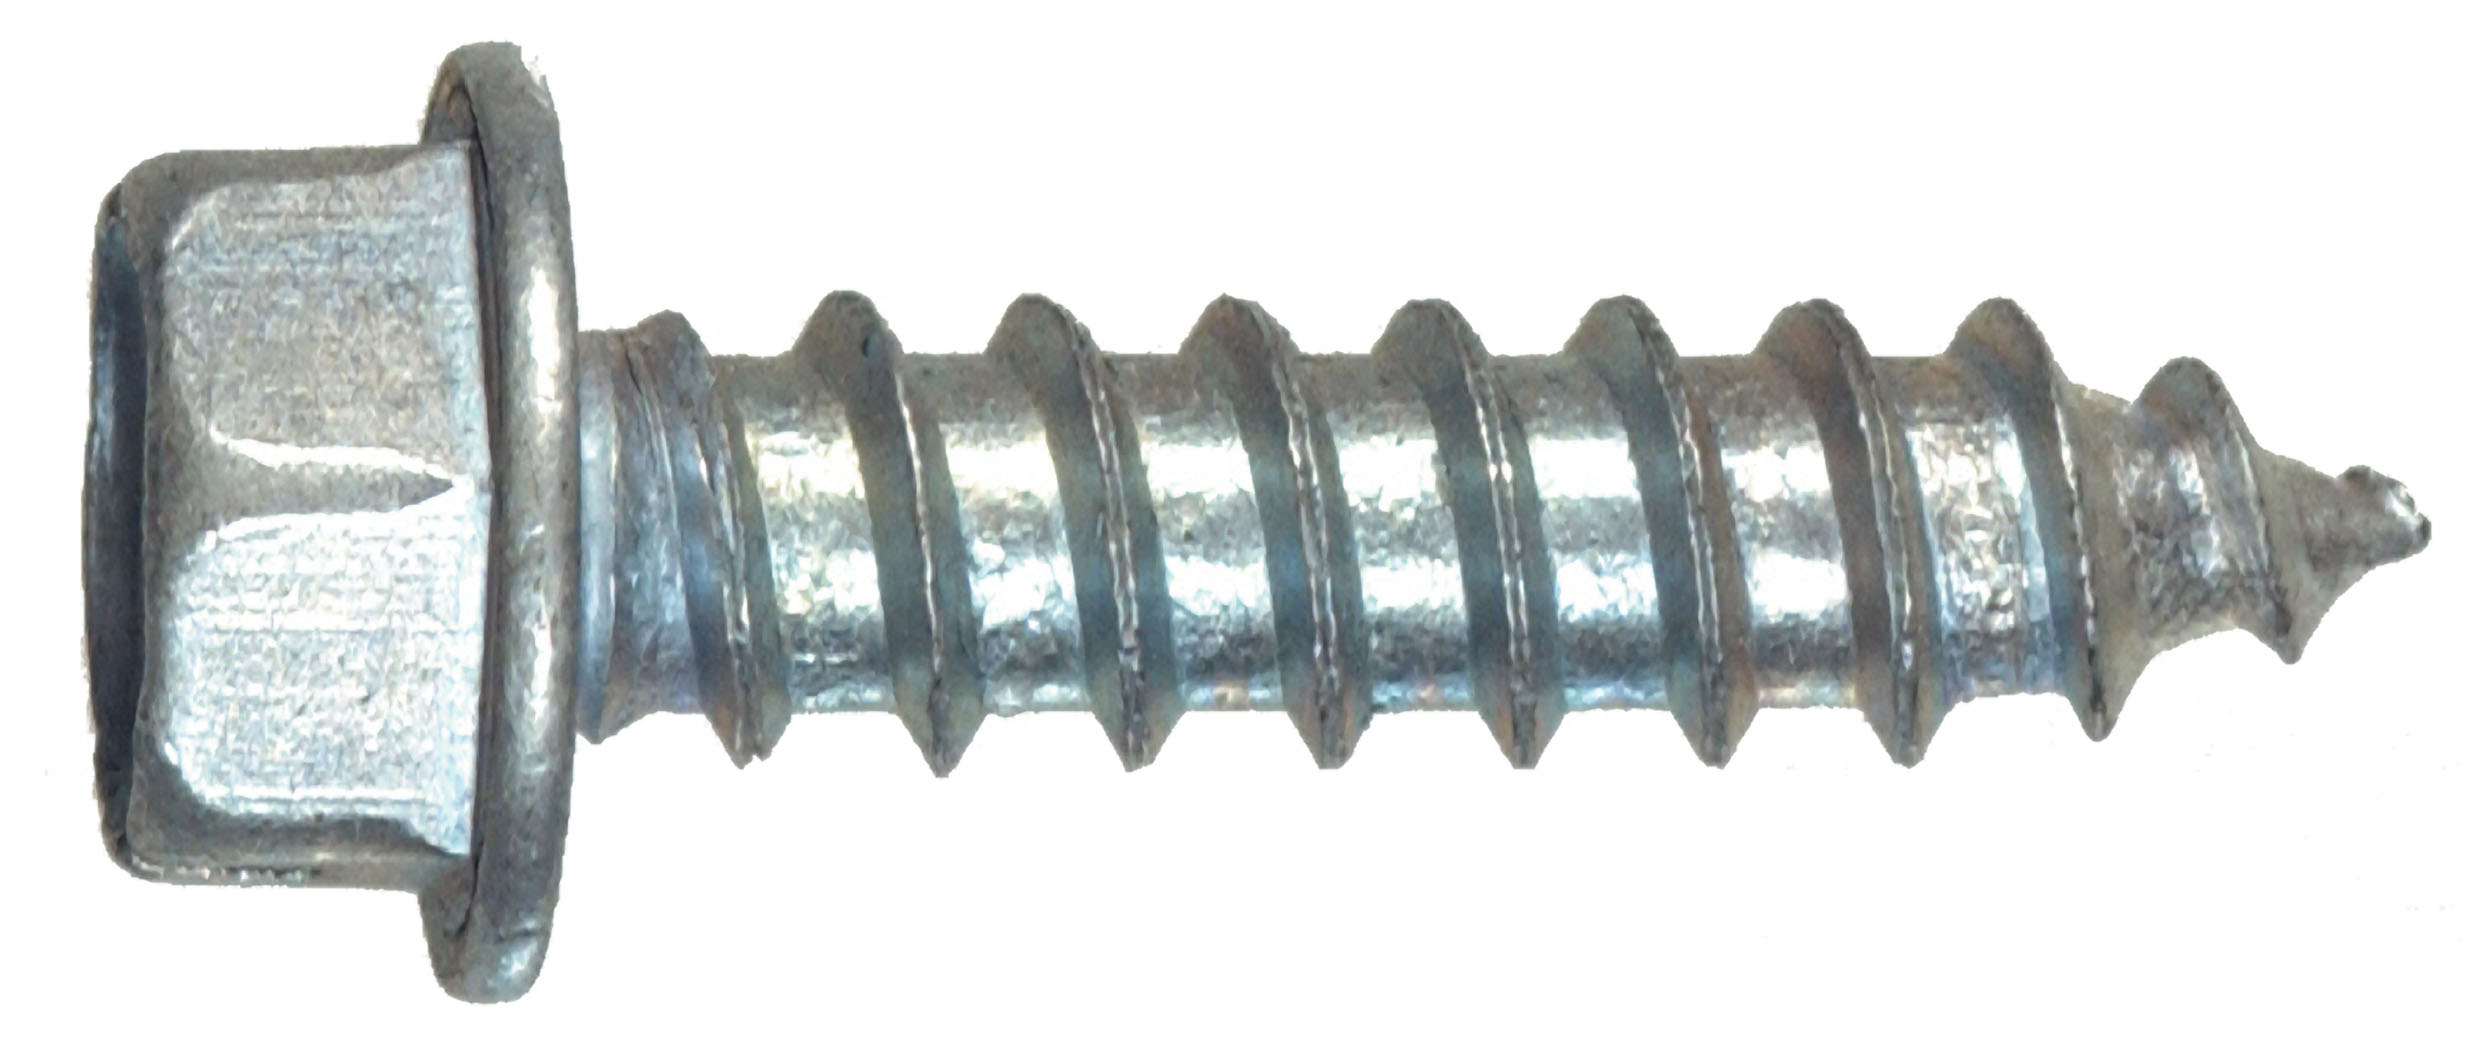 10 x 1-1/4-Inch Hex Washer Head Slotted Sheet Metal Screw